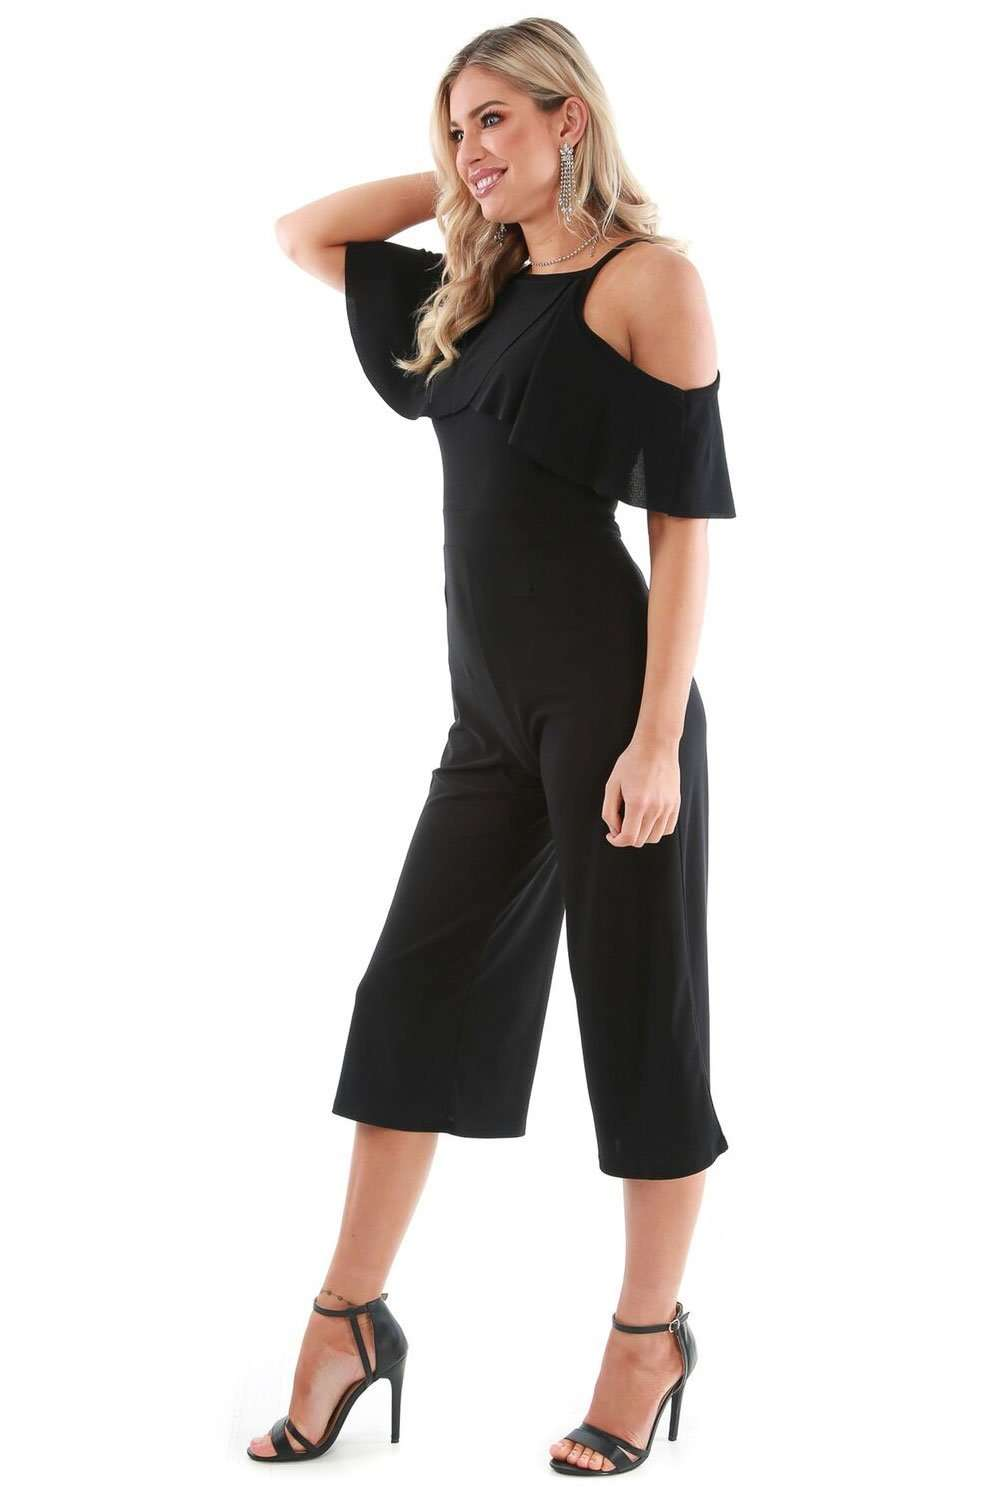 Lucie Frilly Cold Shoulder Culotte Jumpsuit - bejealous-com